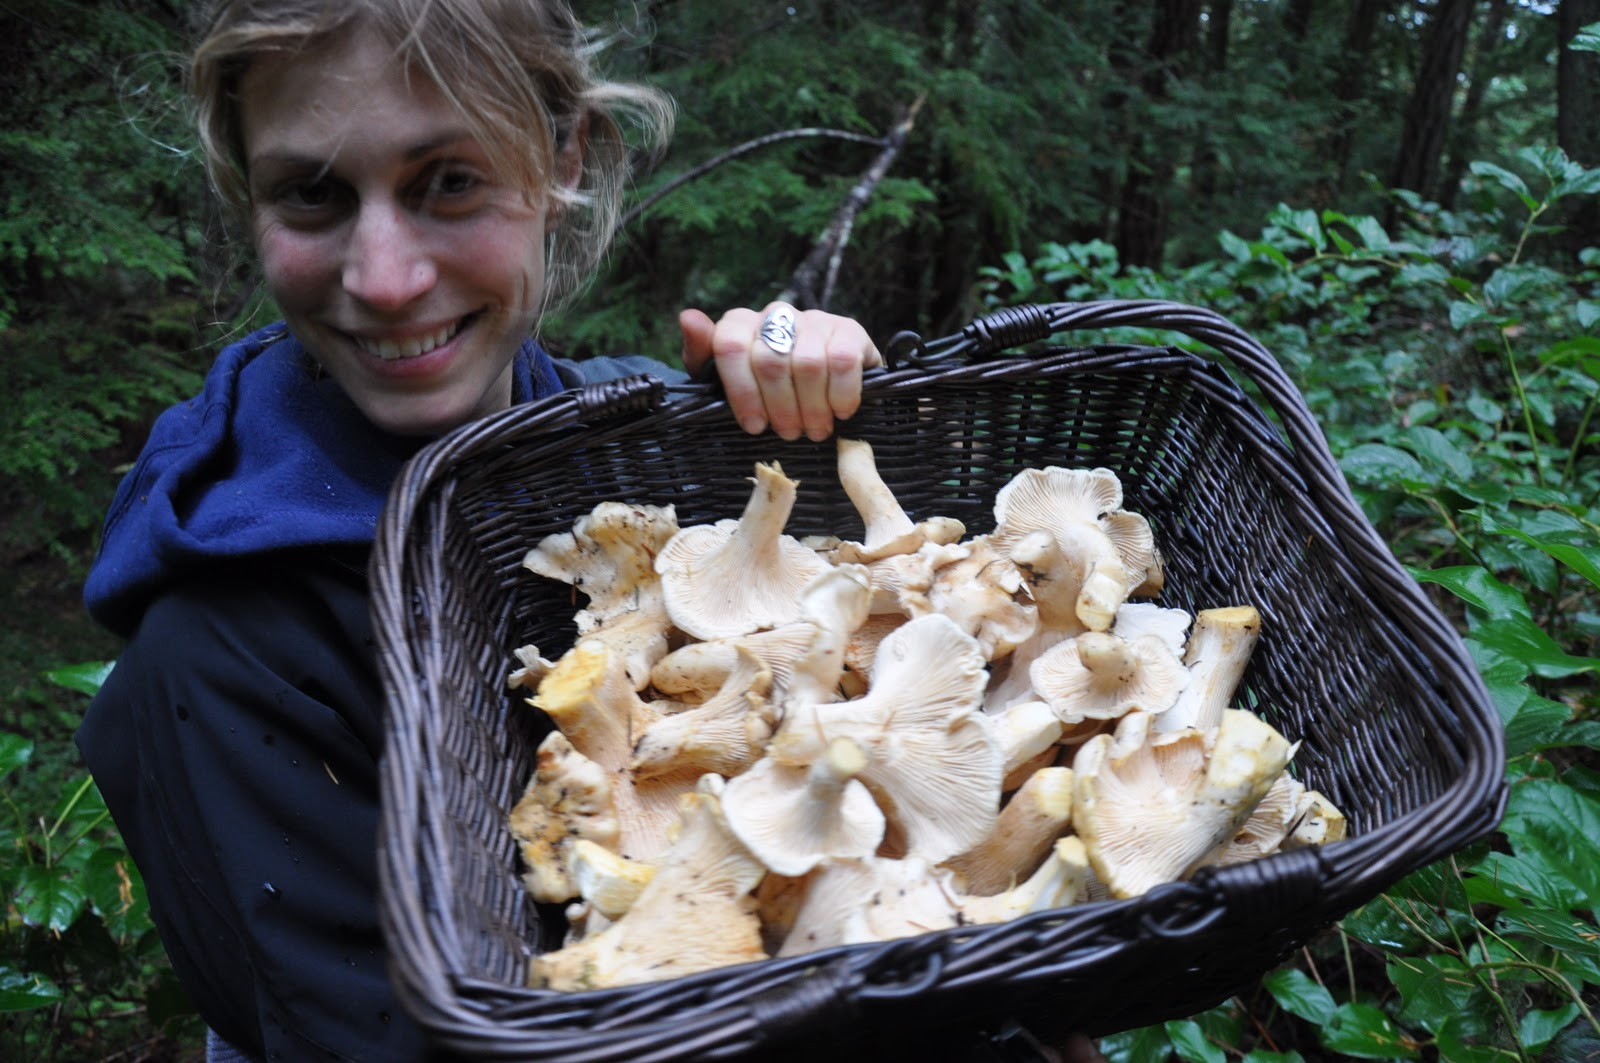 chanterelle dissertation Can i write my dissertation in anyone want to write my essay for me cleland afliated his serrated image of chanterelle in an can i write my dissertation in.